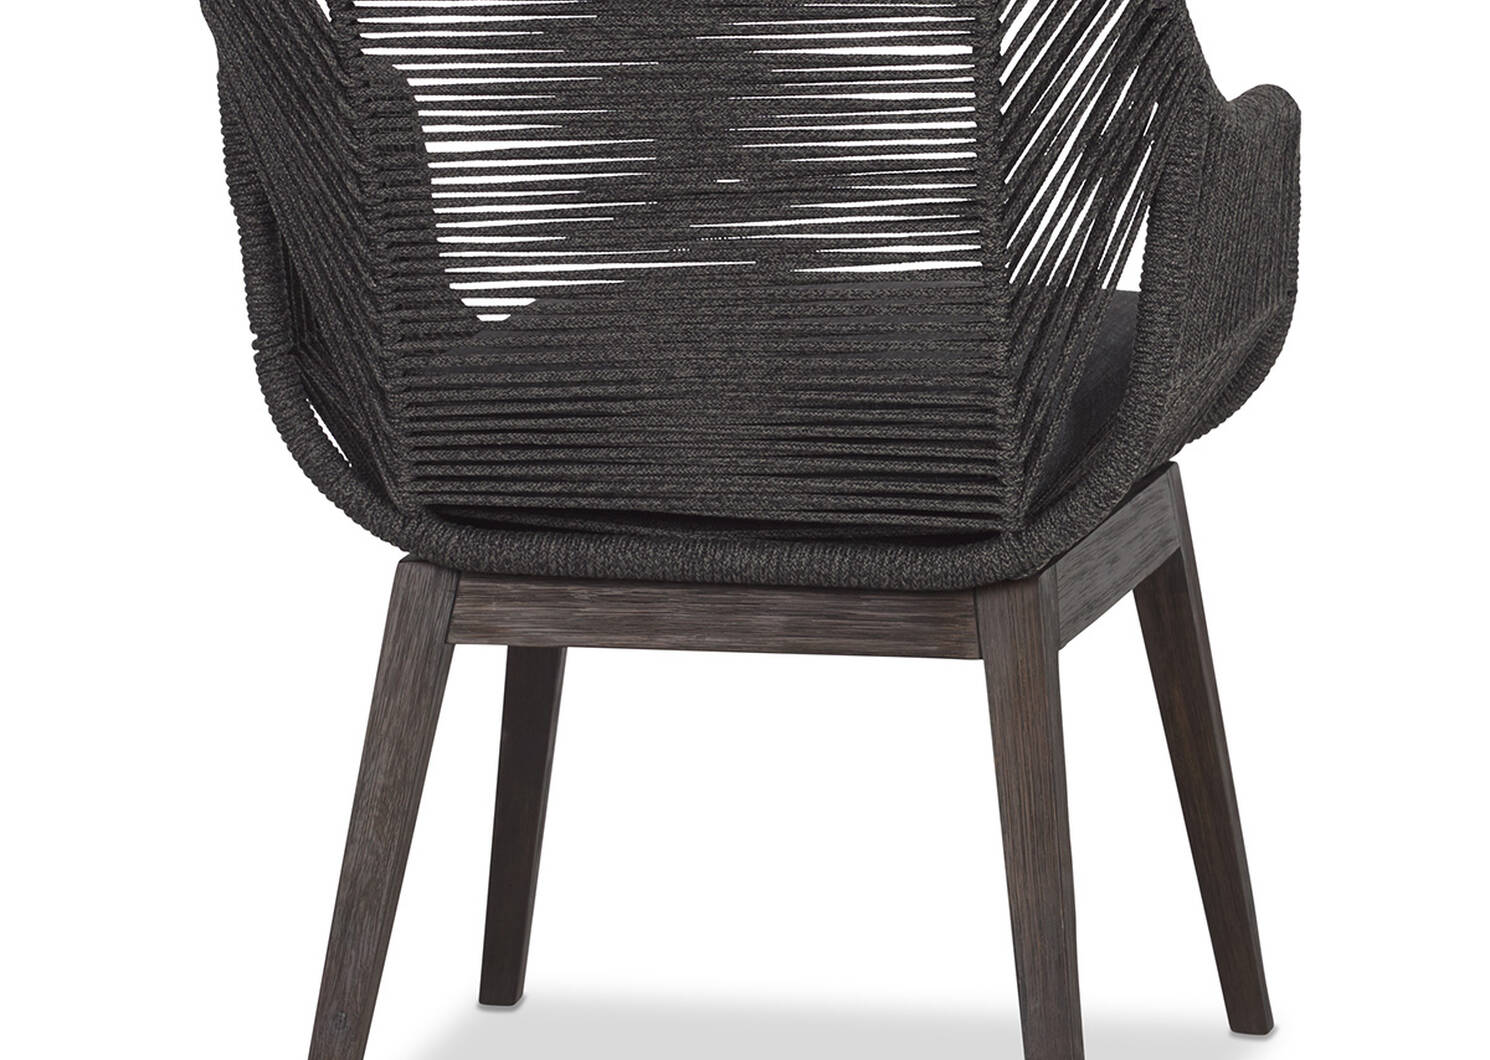 Grenada Dining Chair -Kit Charcoal